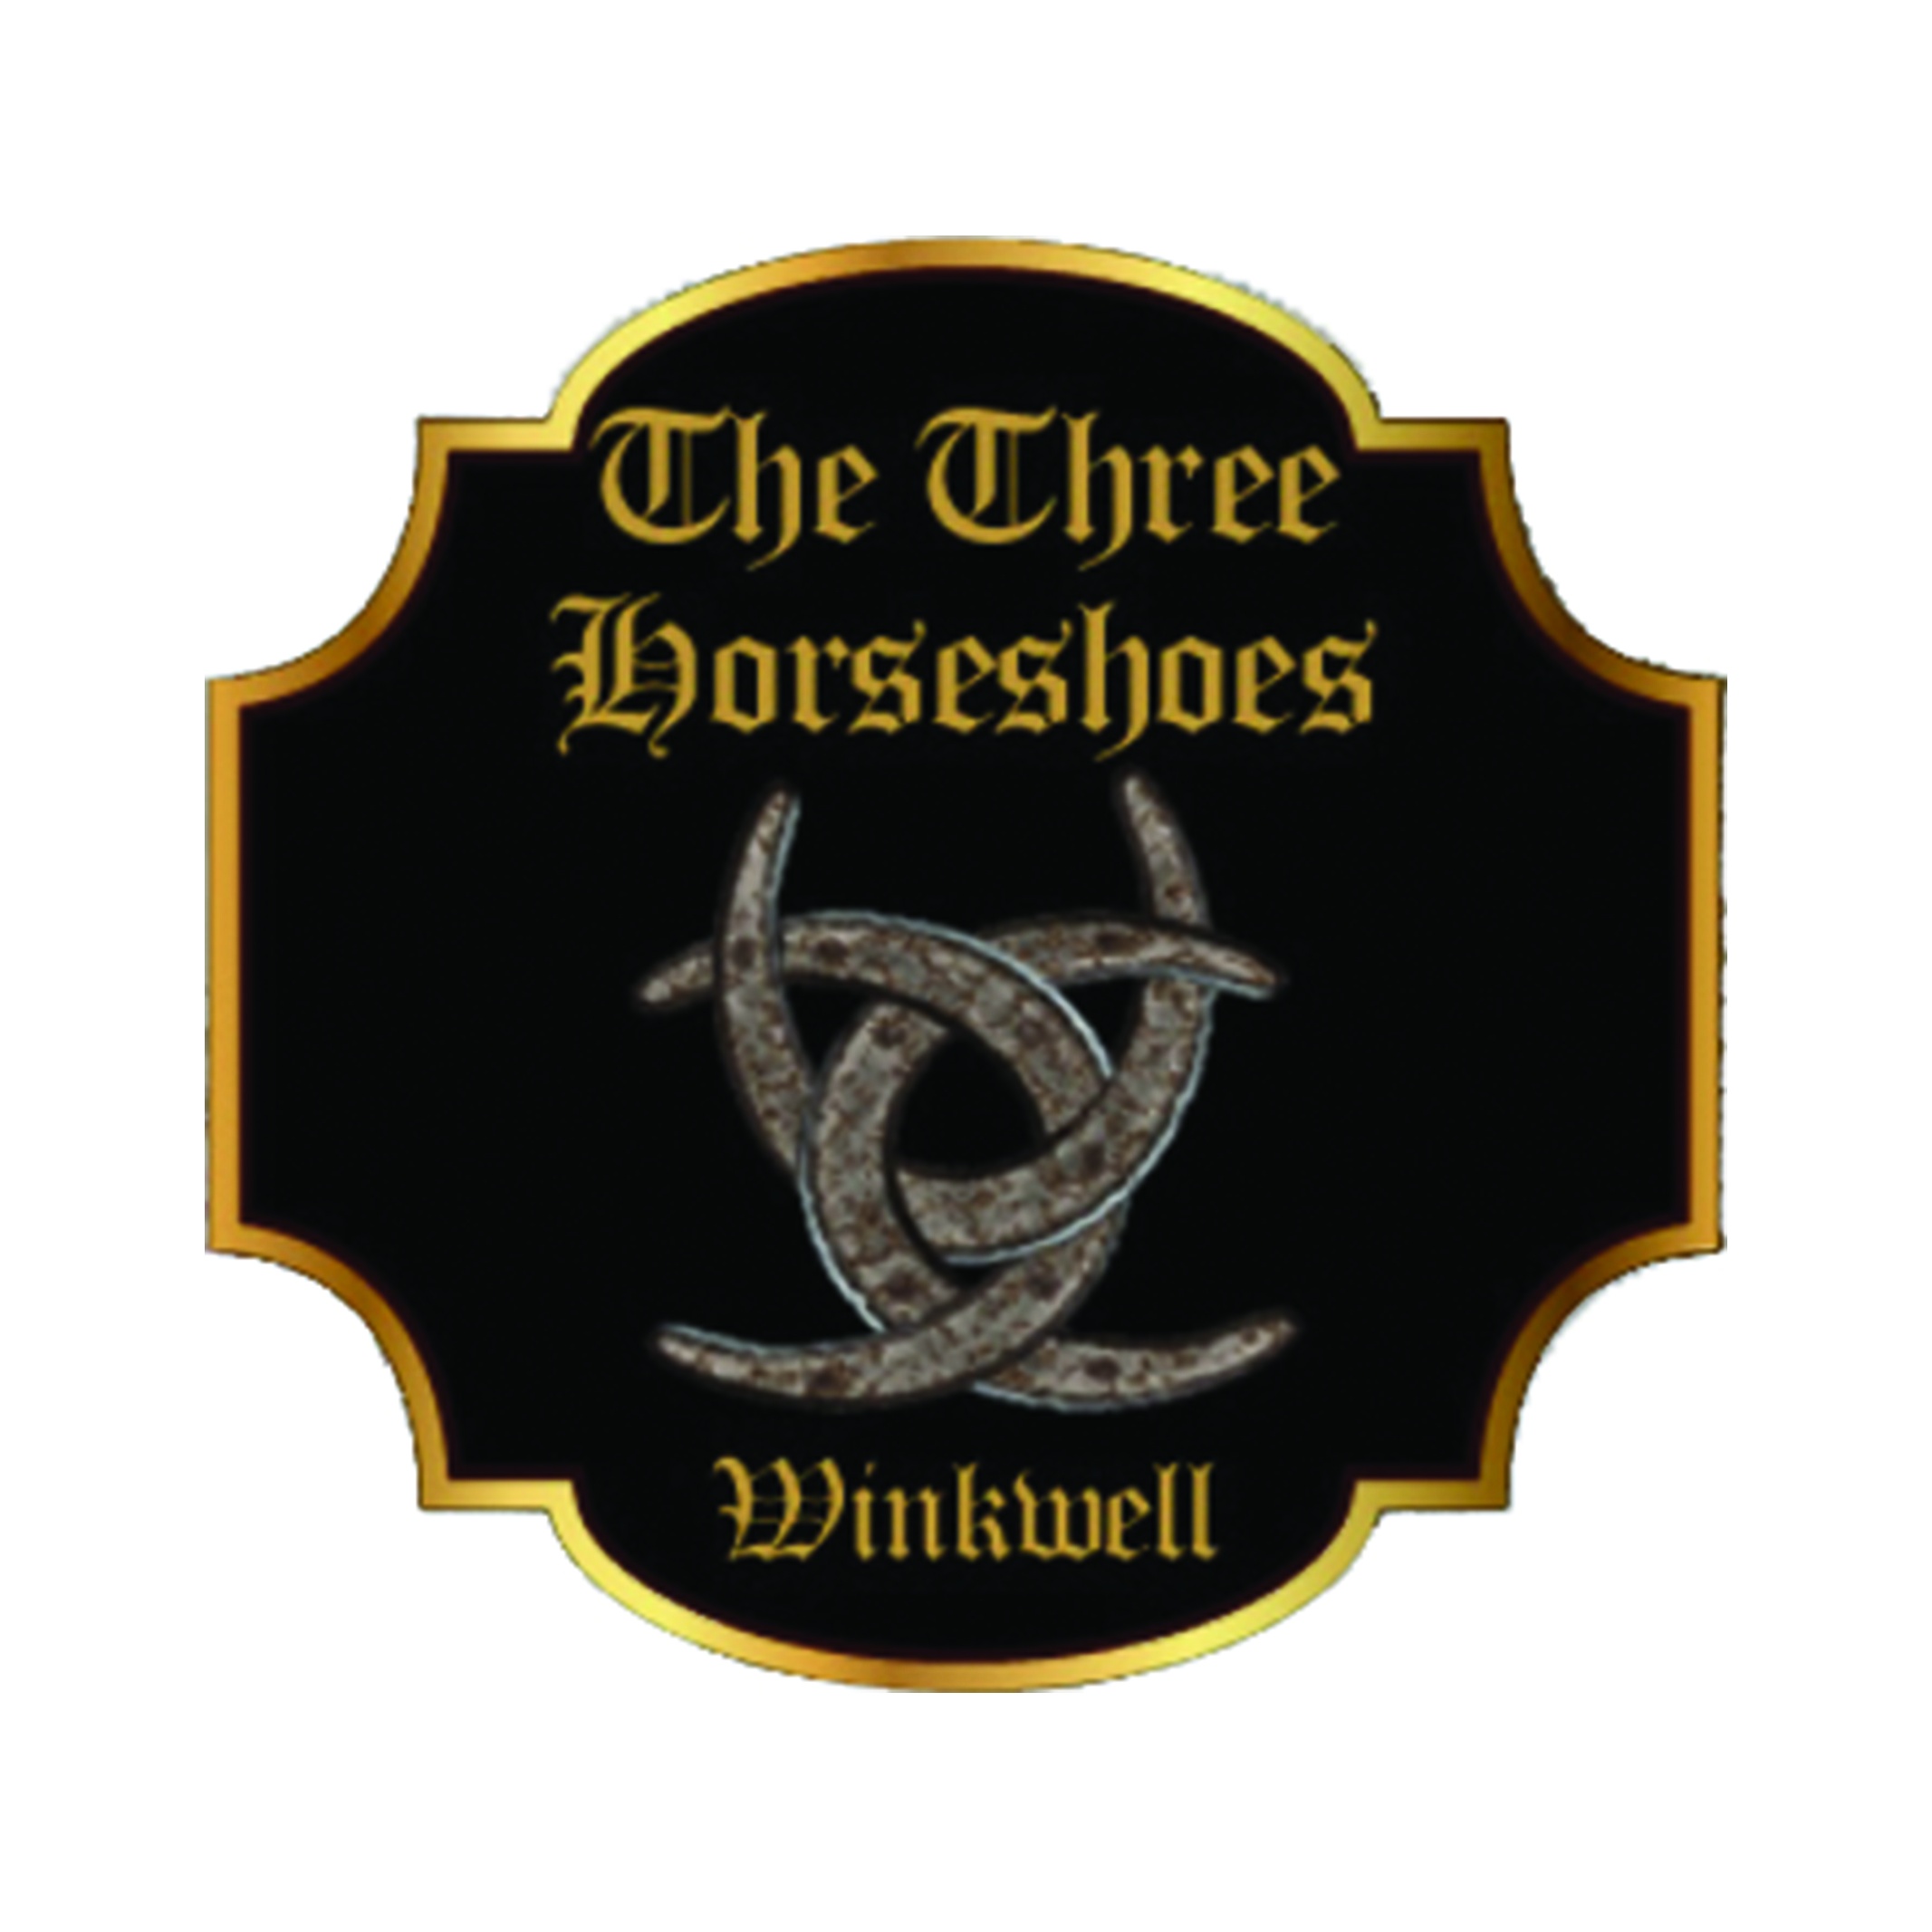 The Three Horseshoes Inn Winkwell